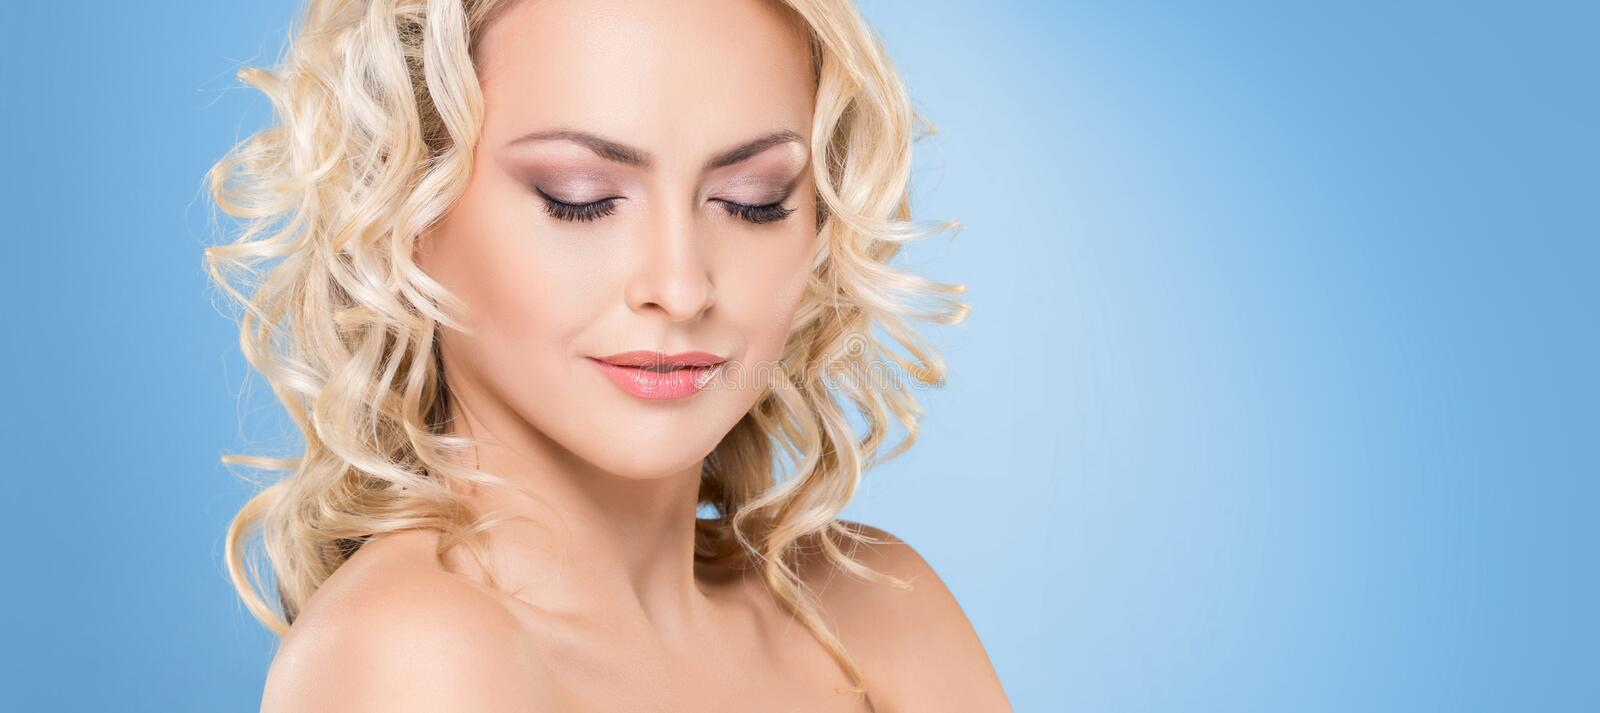 Portrait of young and beautiful blond girl with curly hair. Face lifting and beauty concept. stock image